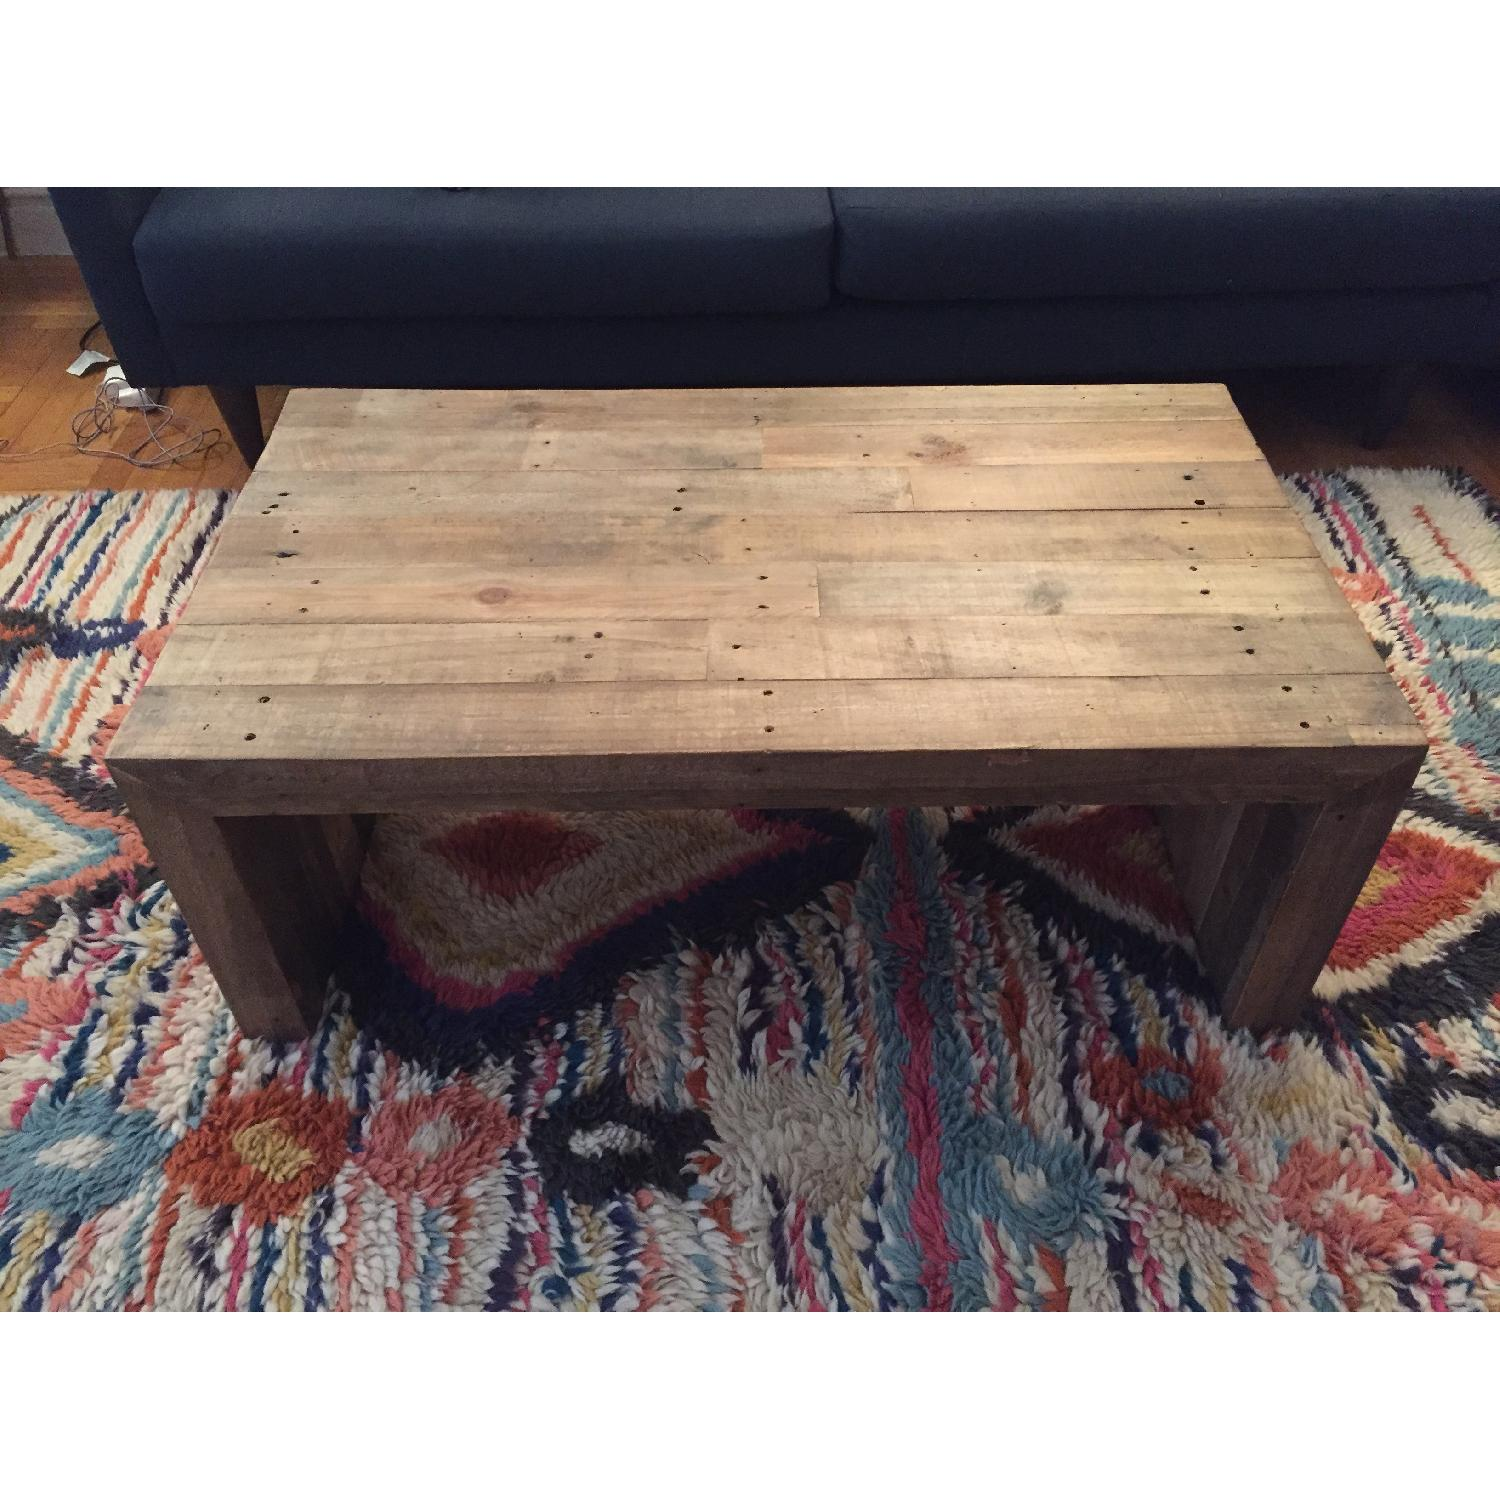 ... West Elm Emmerson Reclaimed Wood Coffee Table In Gray 5 ...